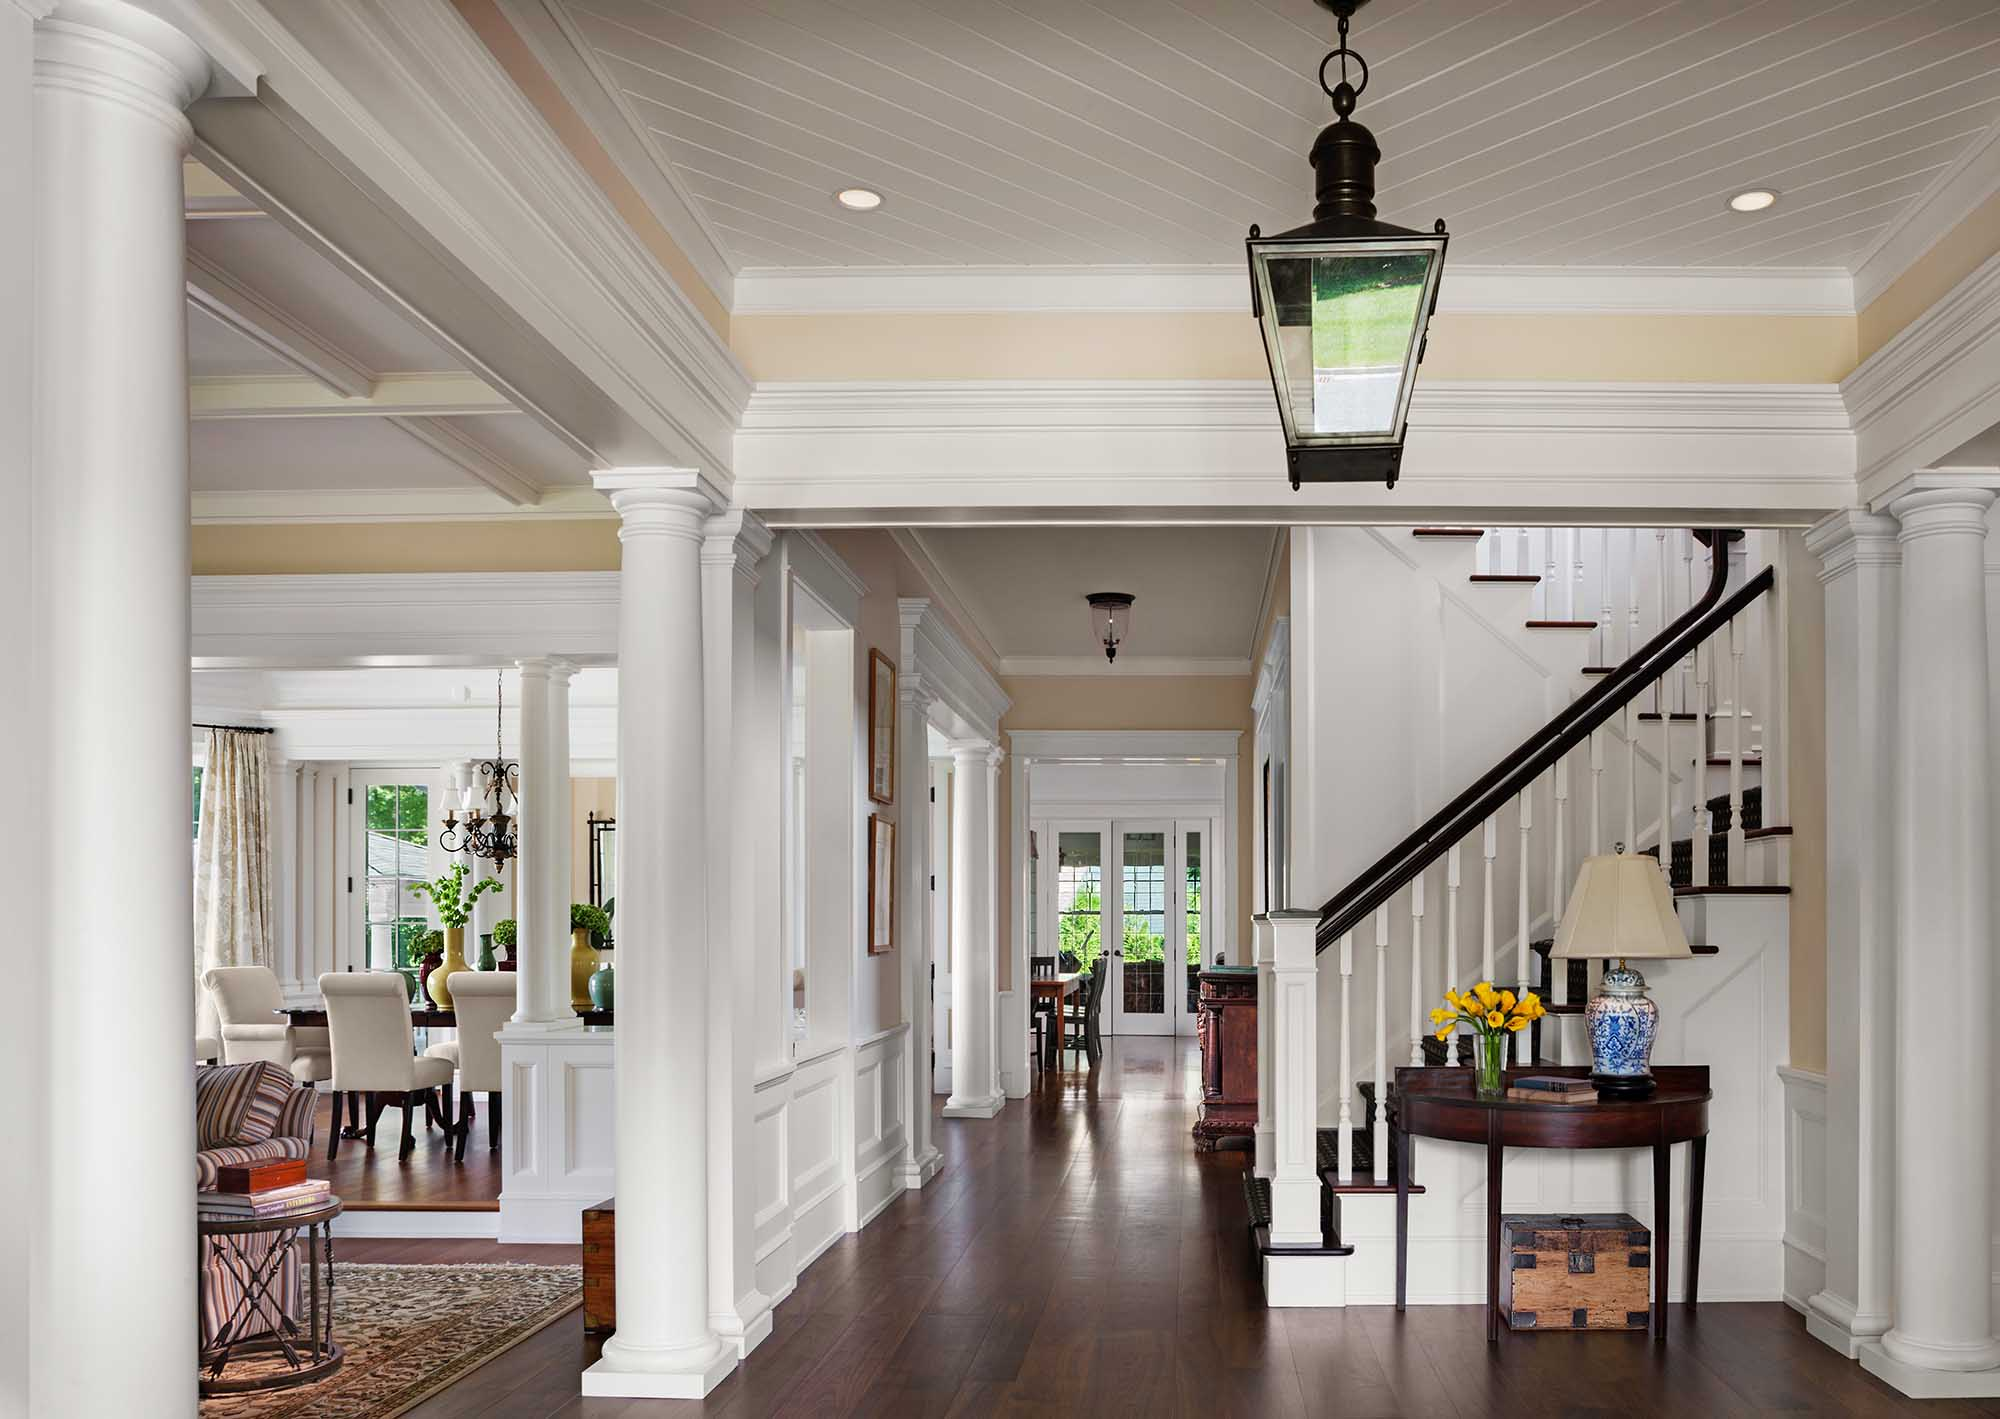 Queen Anne Revival, Cold Spring Harbor, long island, doric columns, stairs, wainscott, coffer ceiling